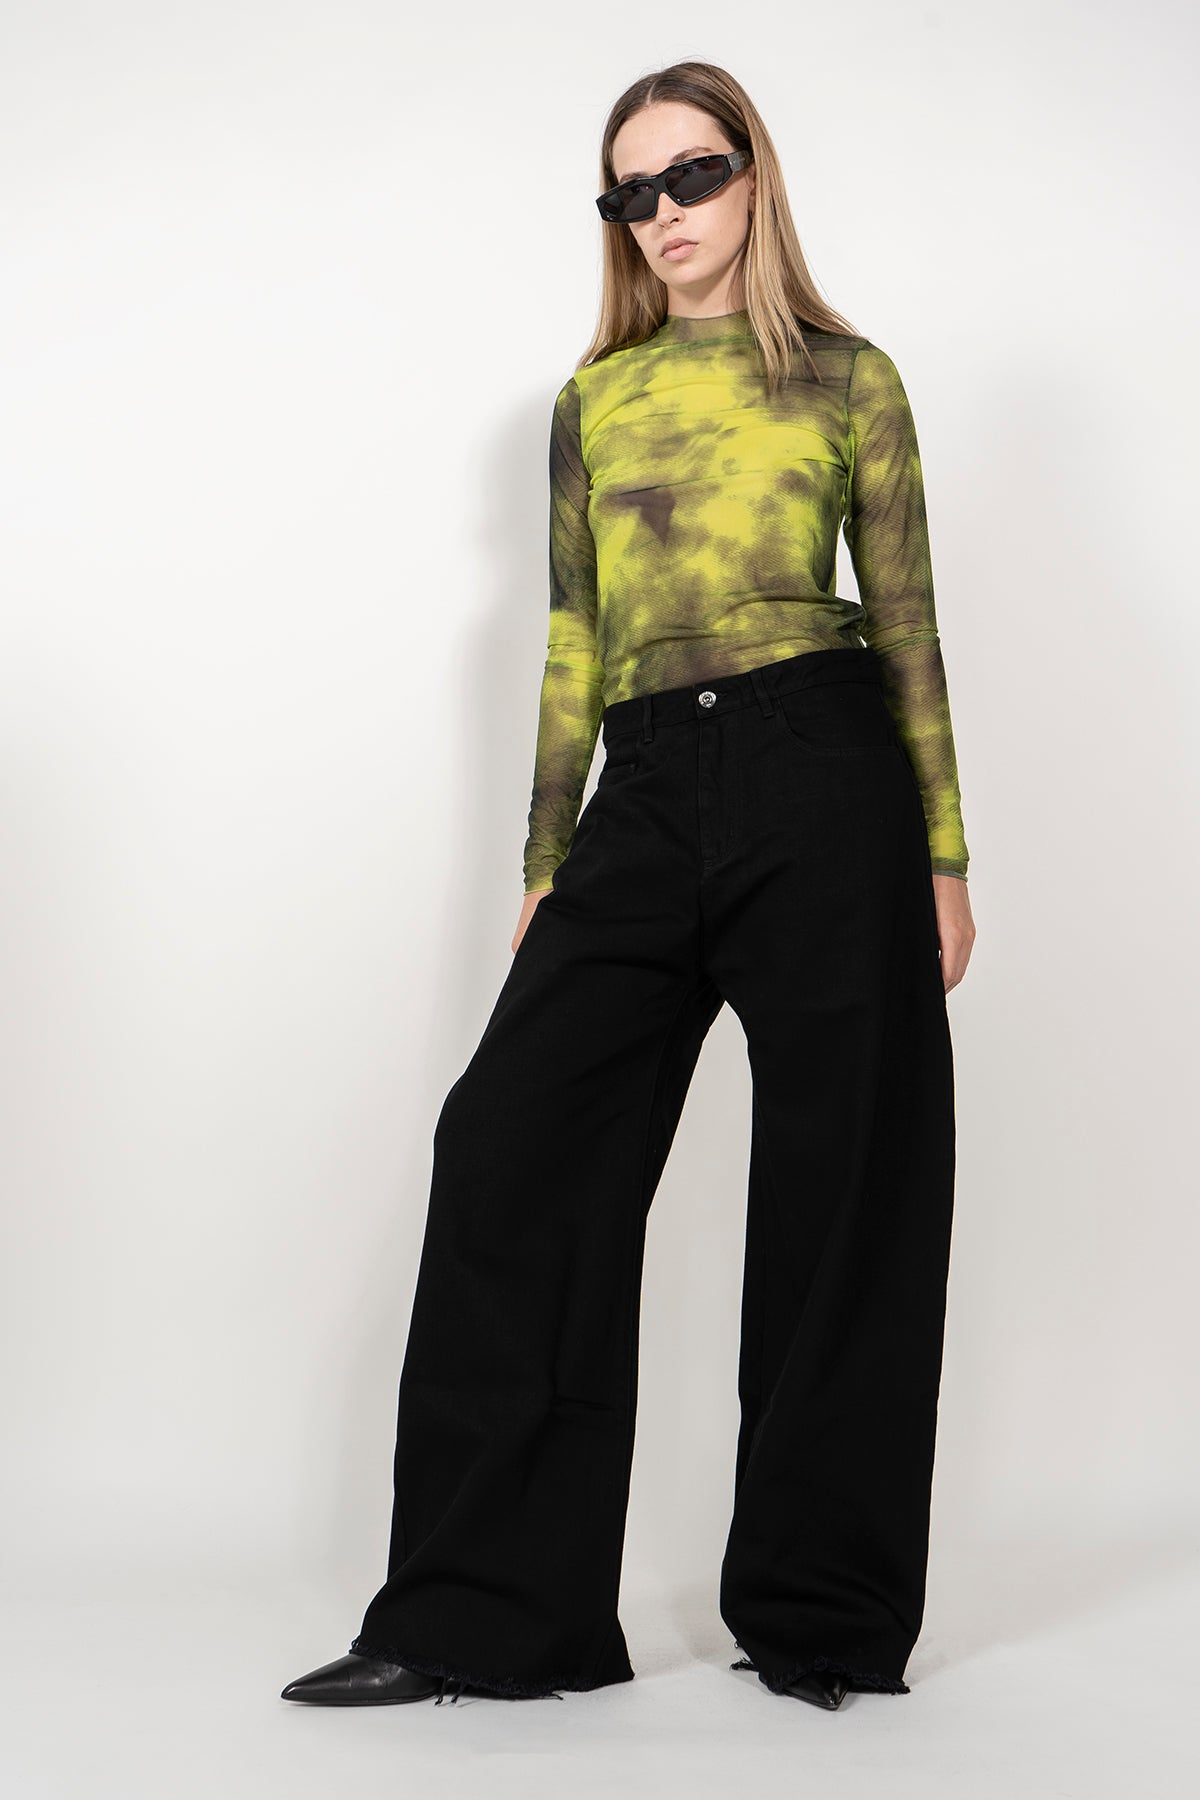 LONG SLEEVE TOP IN MESH LIME TIE DYE MARQUES ALMEIDA